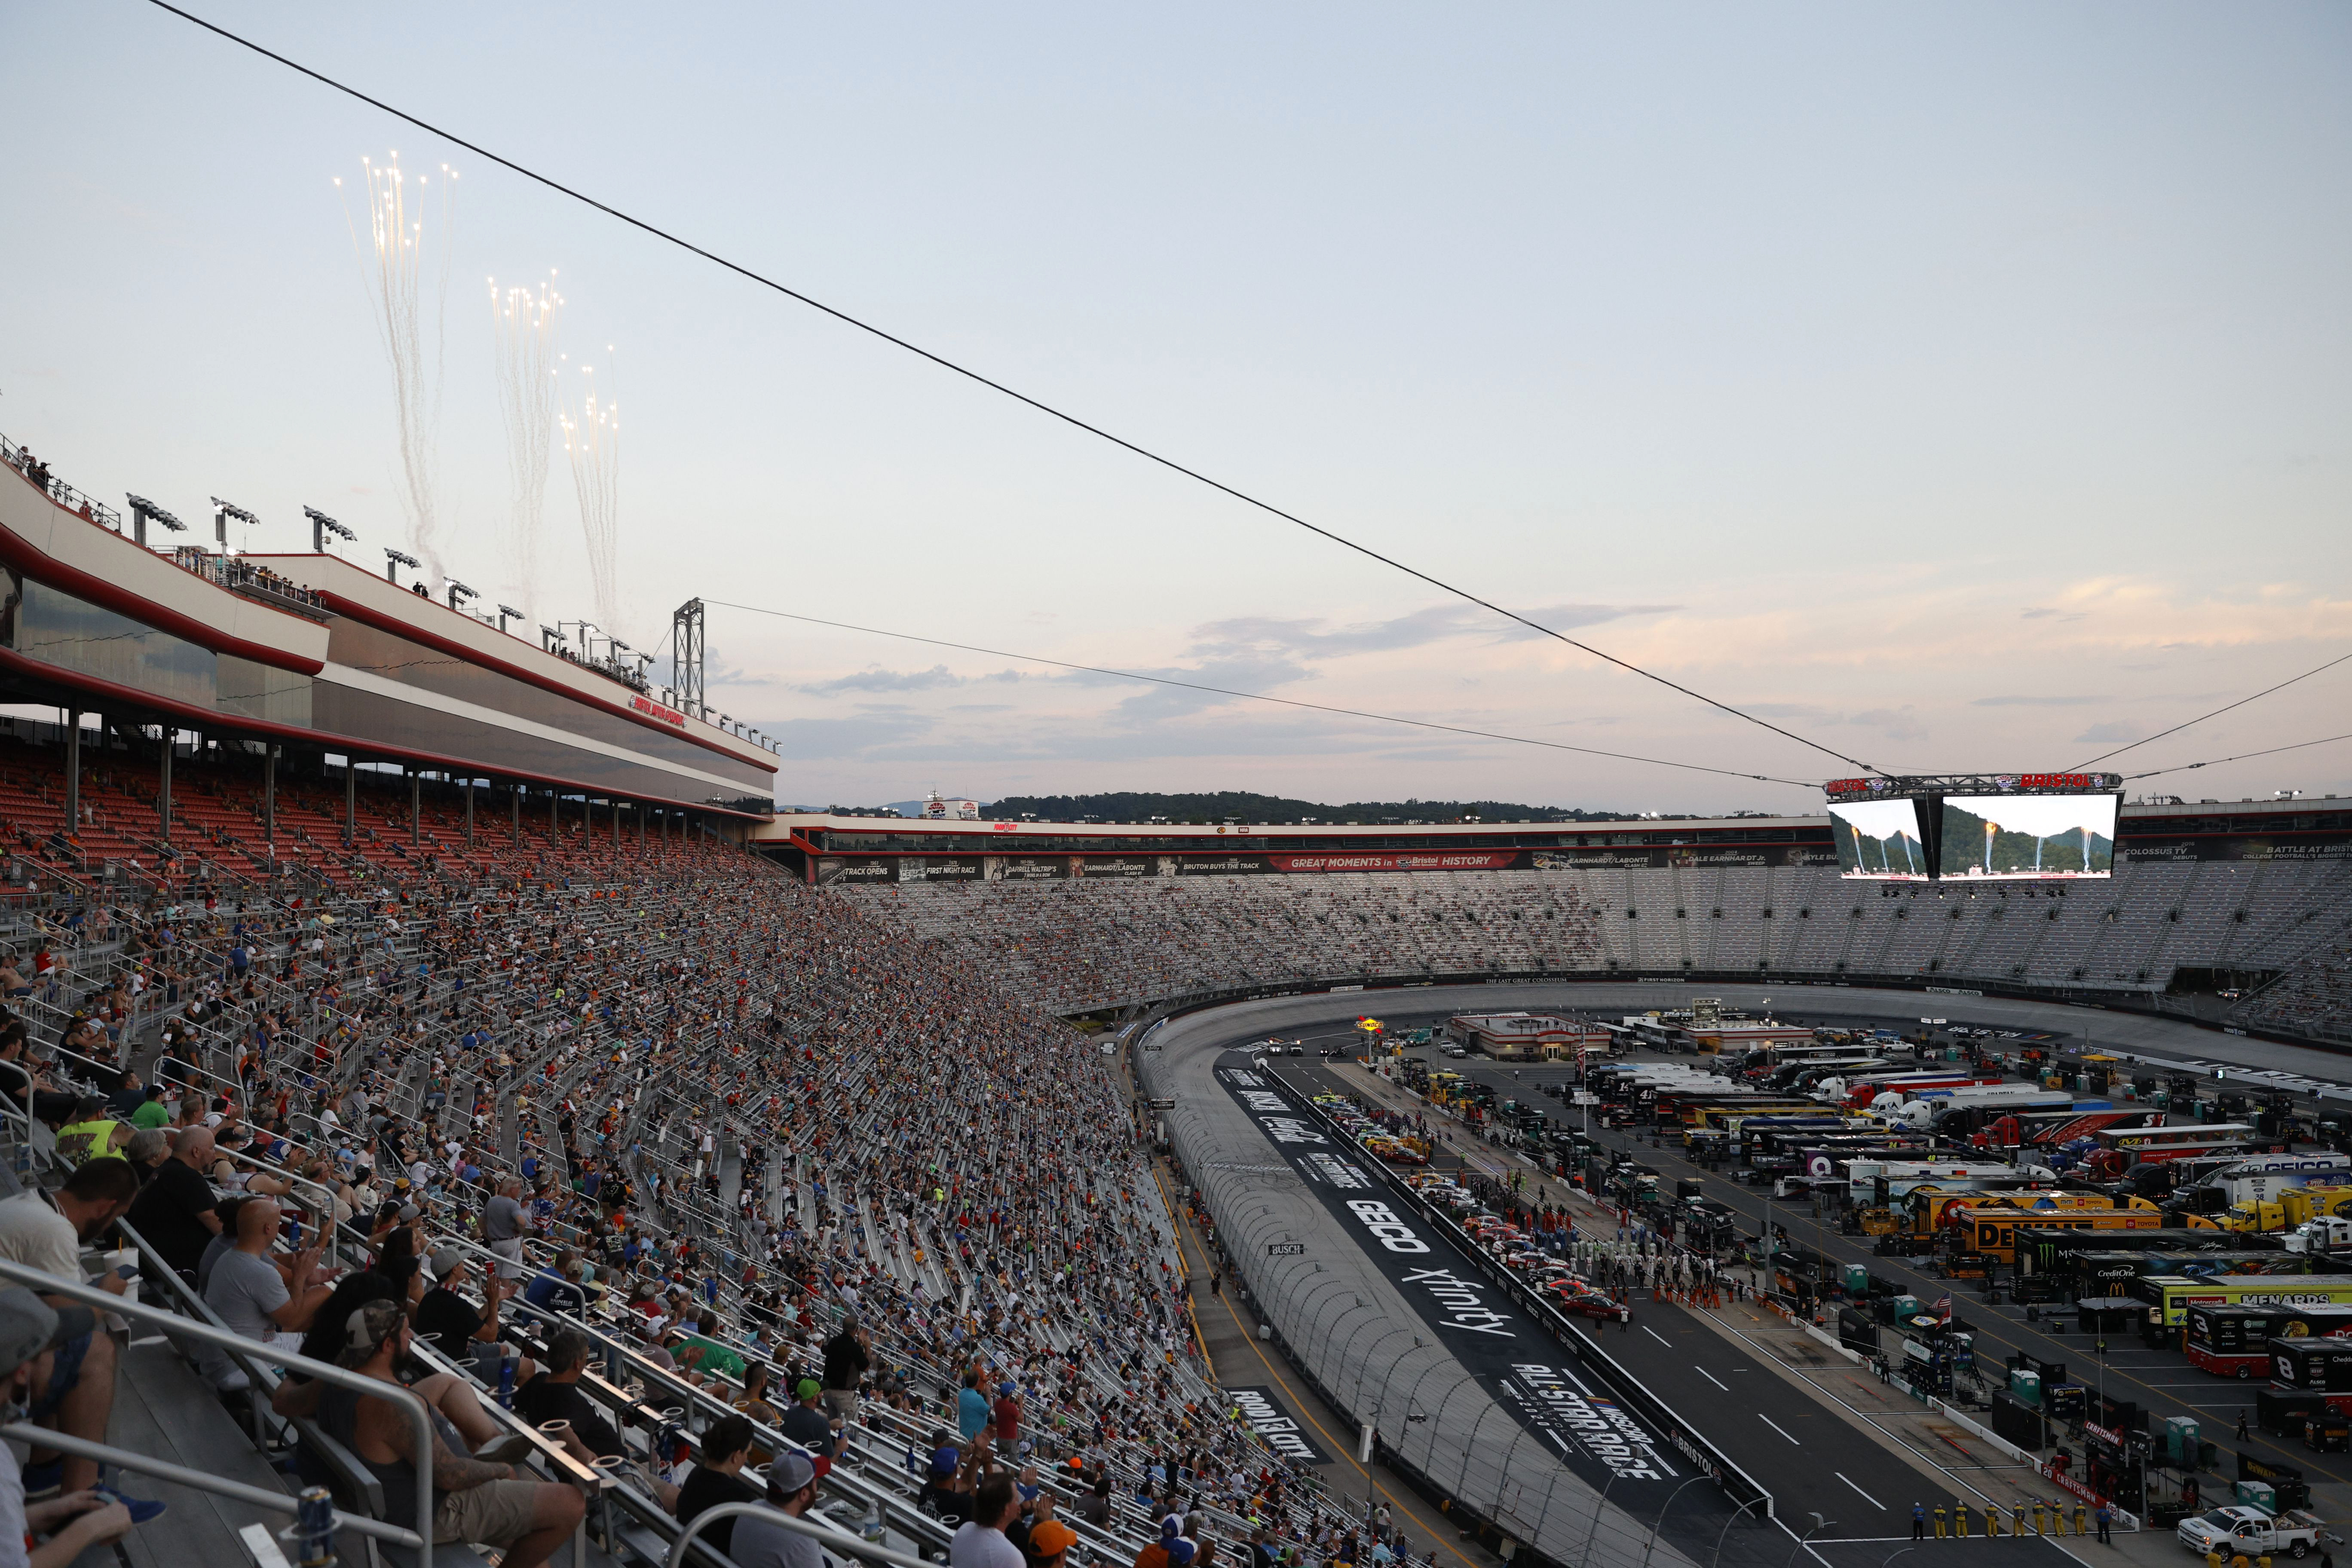 A general view of fans, drivers and crew during during pre-race ceremonies prior to the NASCAR Cup Series All-Star Race at Bristol Motor Speedway on July 15, 2020 in Bristol, Tennessee.